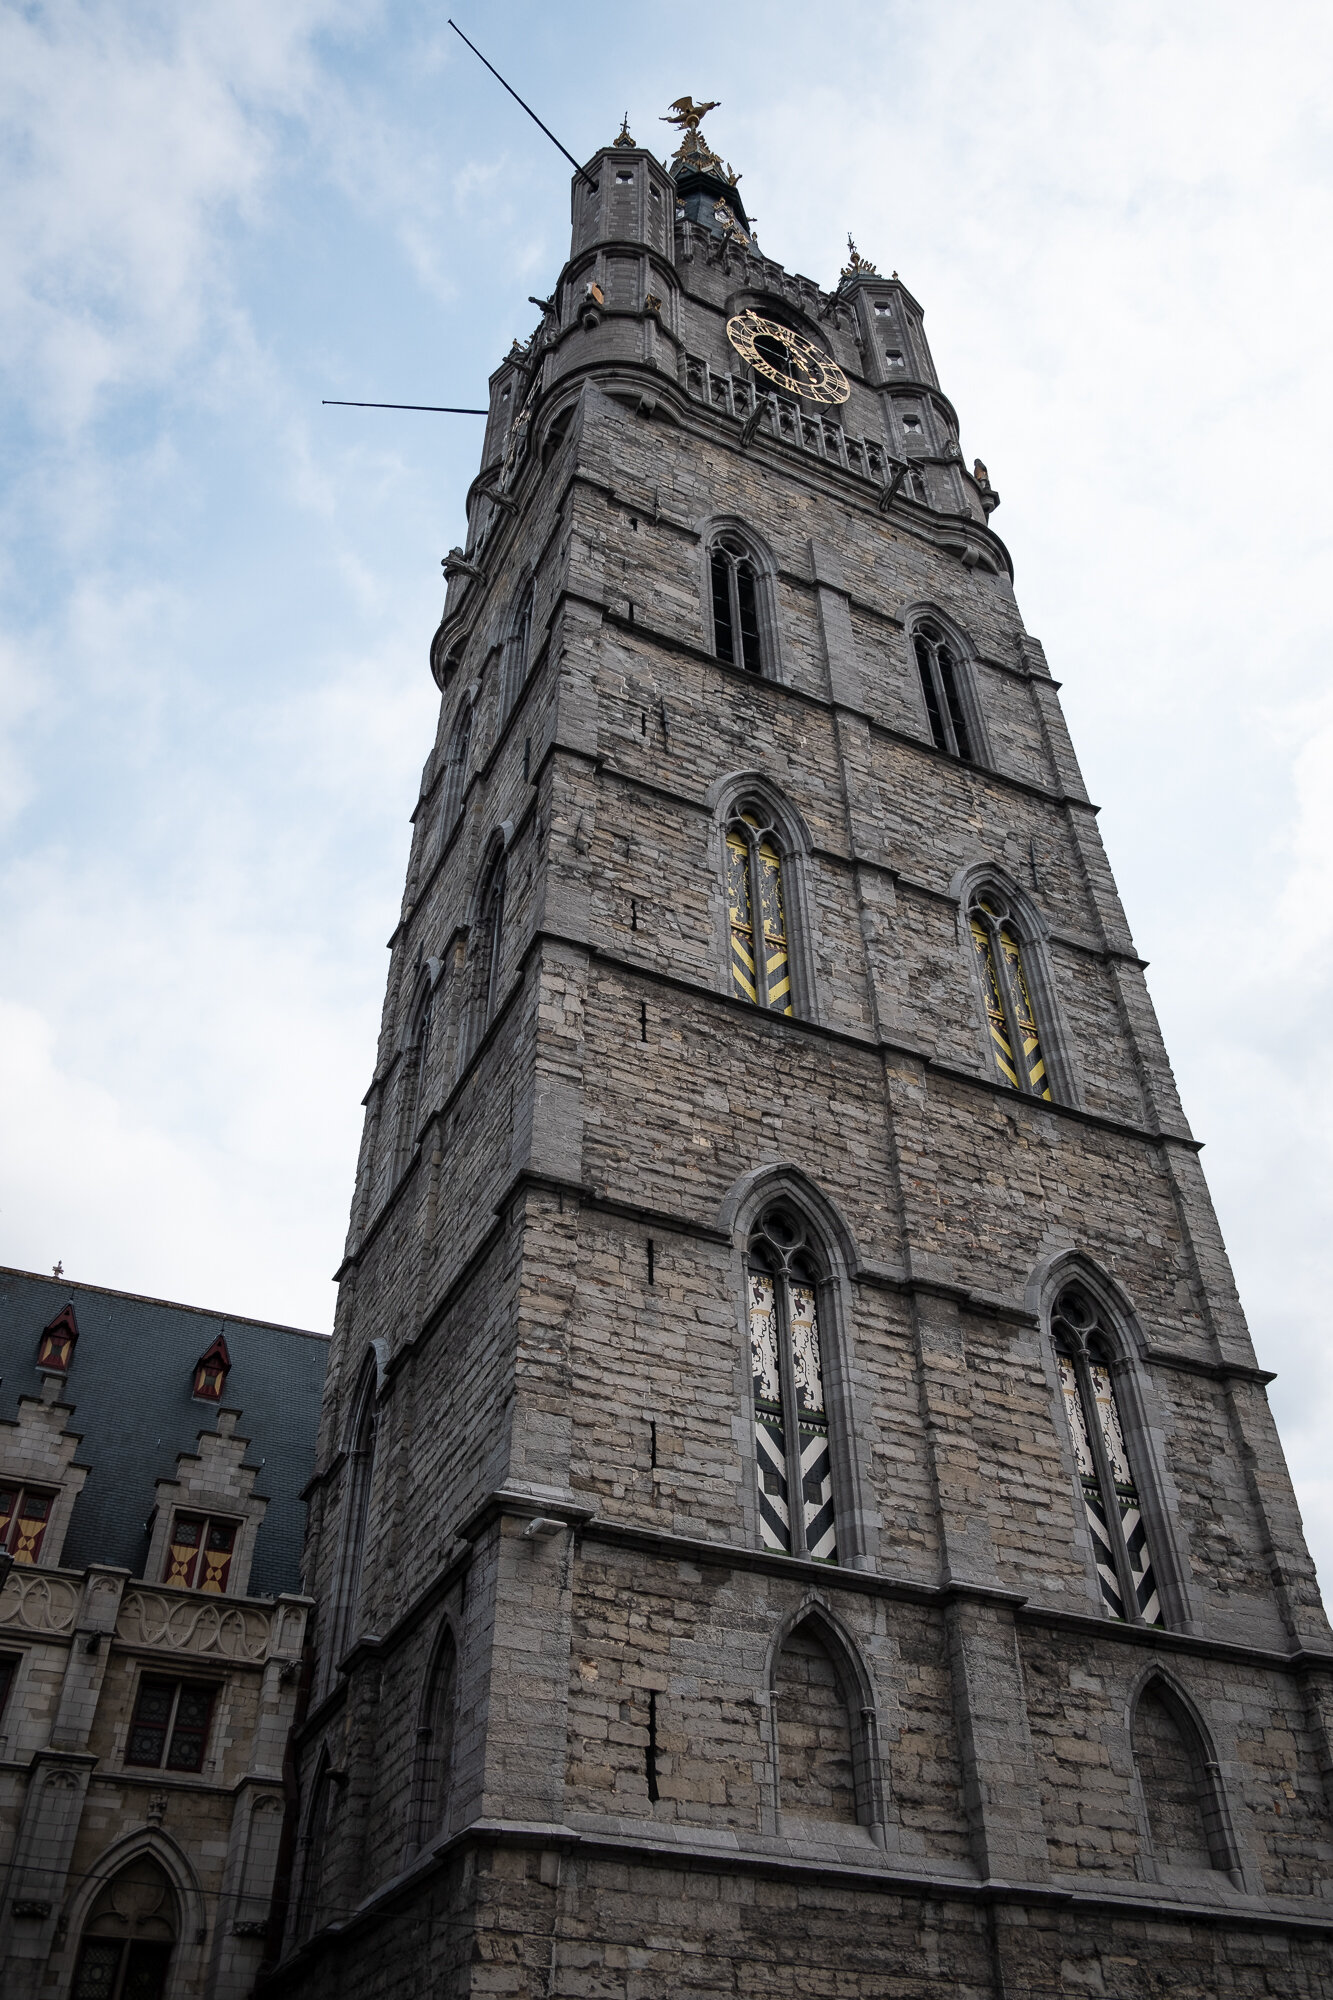 Looking up at the Belfry of Ghent